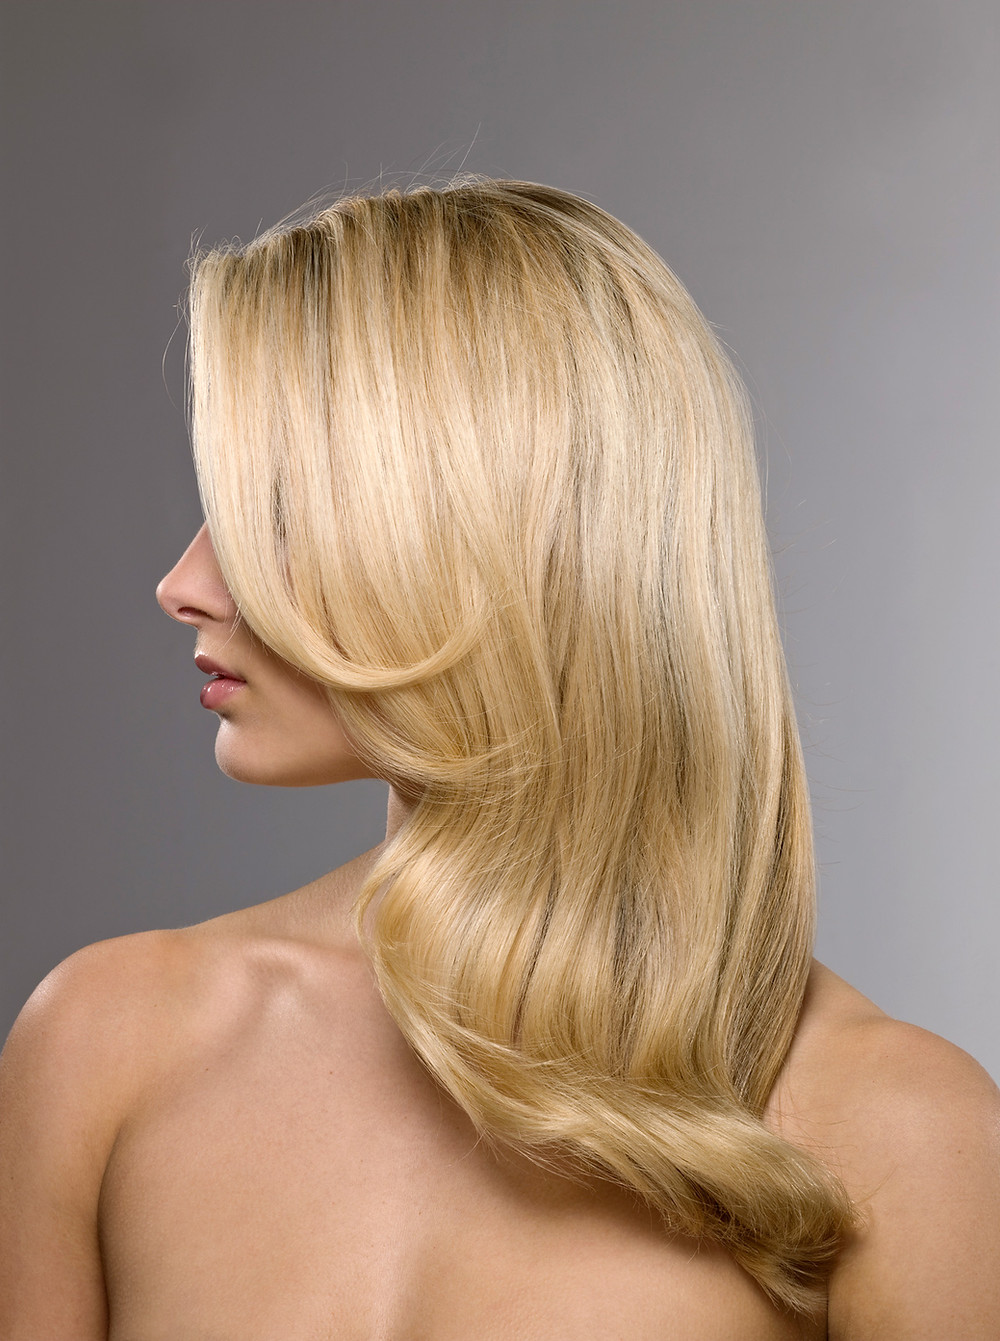 Blond Lady with smooth flowing hair